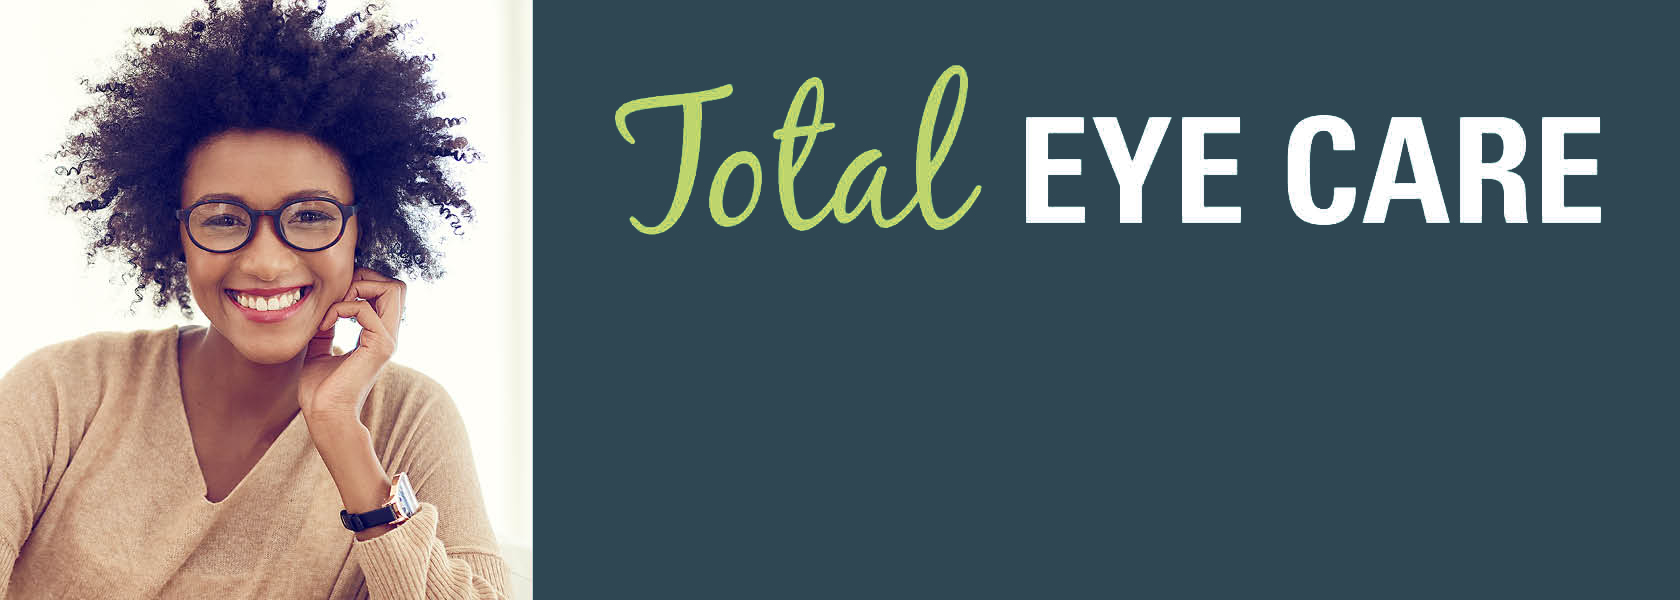 Total Eye Care in Sioux Falls